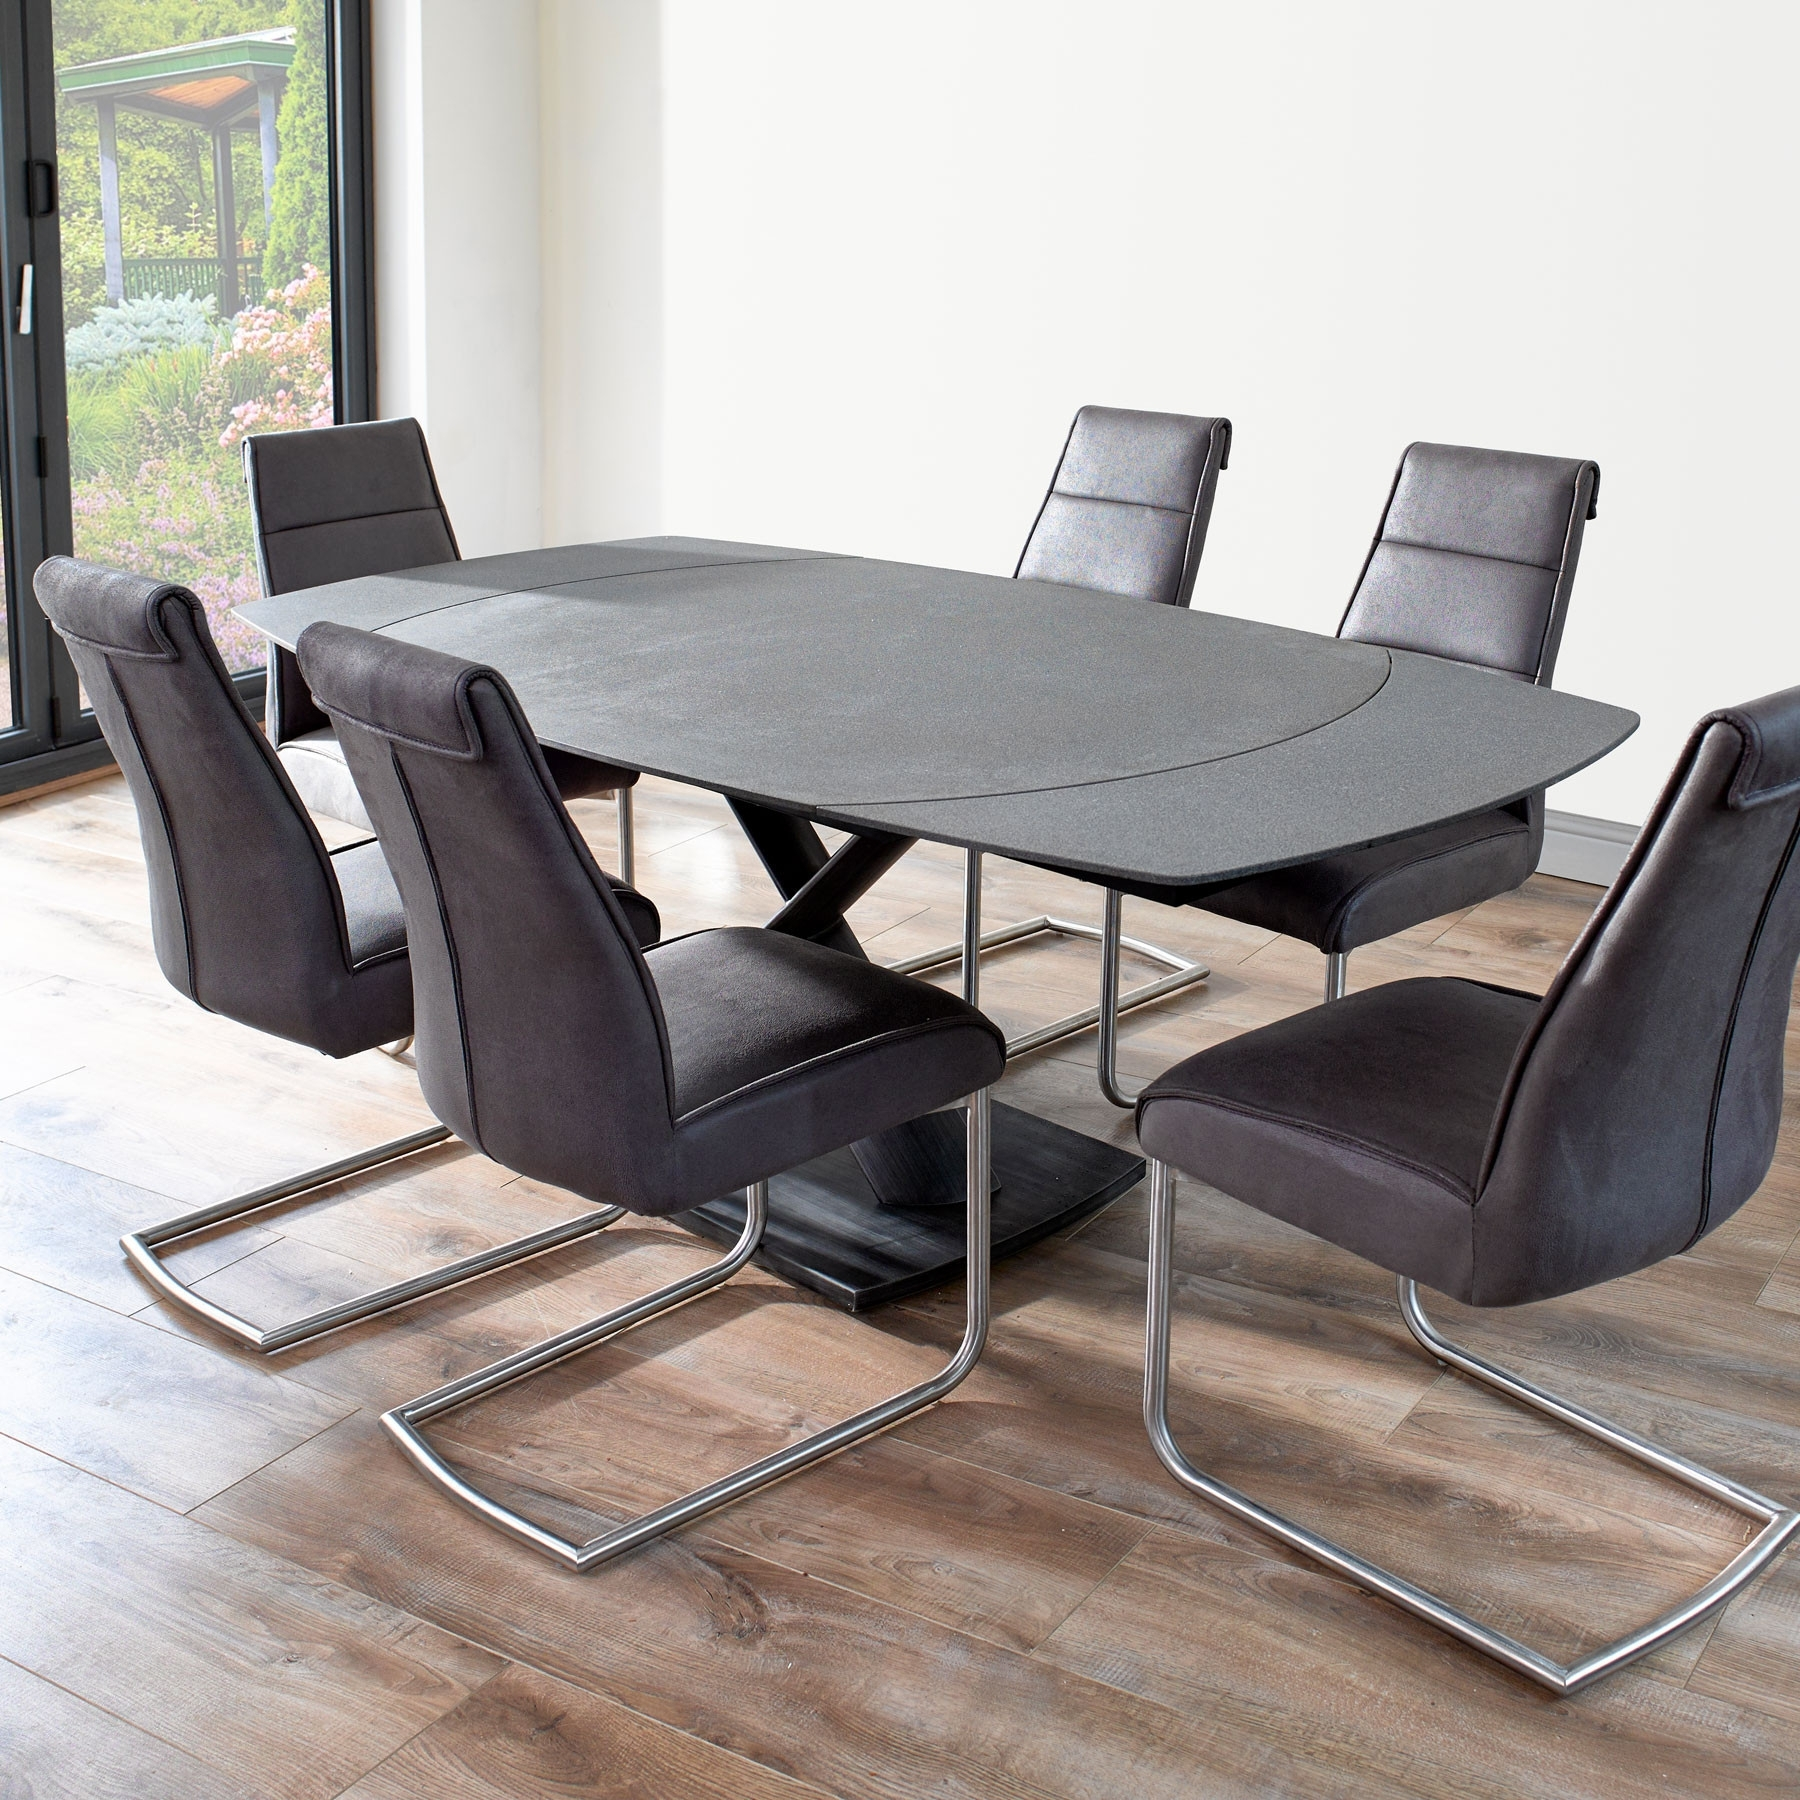 Extending Dining Tables And 6 Chairs intended for Preferred Domasco Revolving Extending Dining Table & 6 Chairs